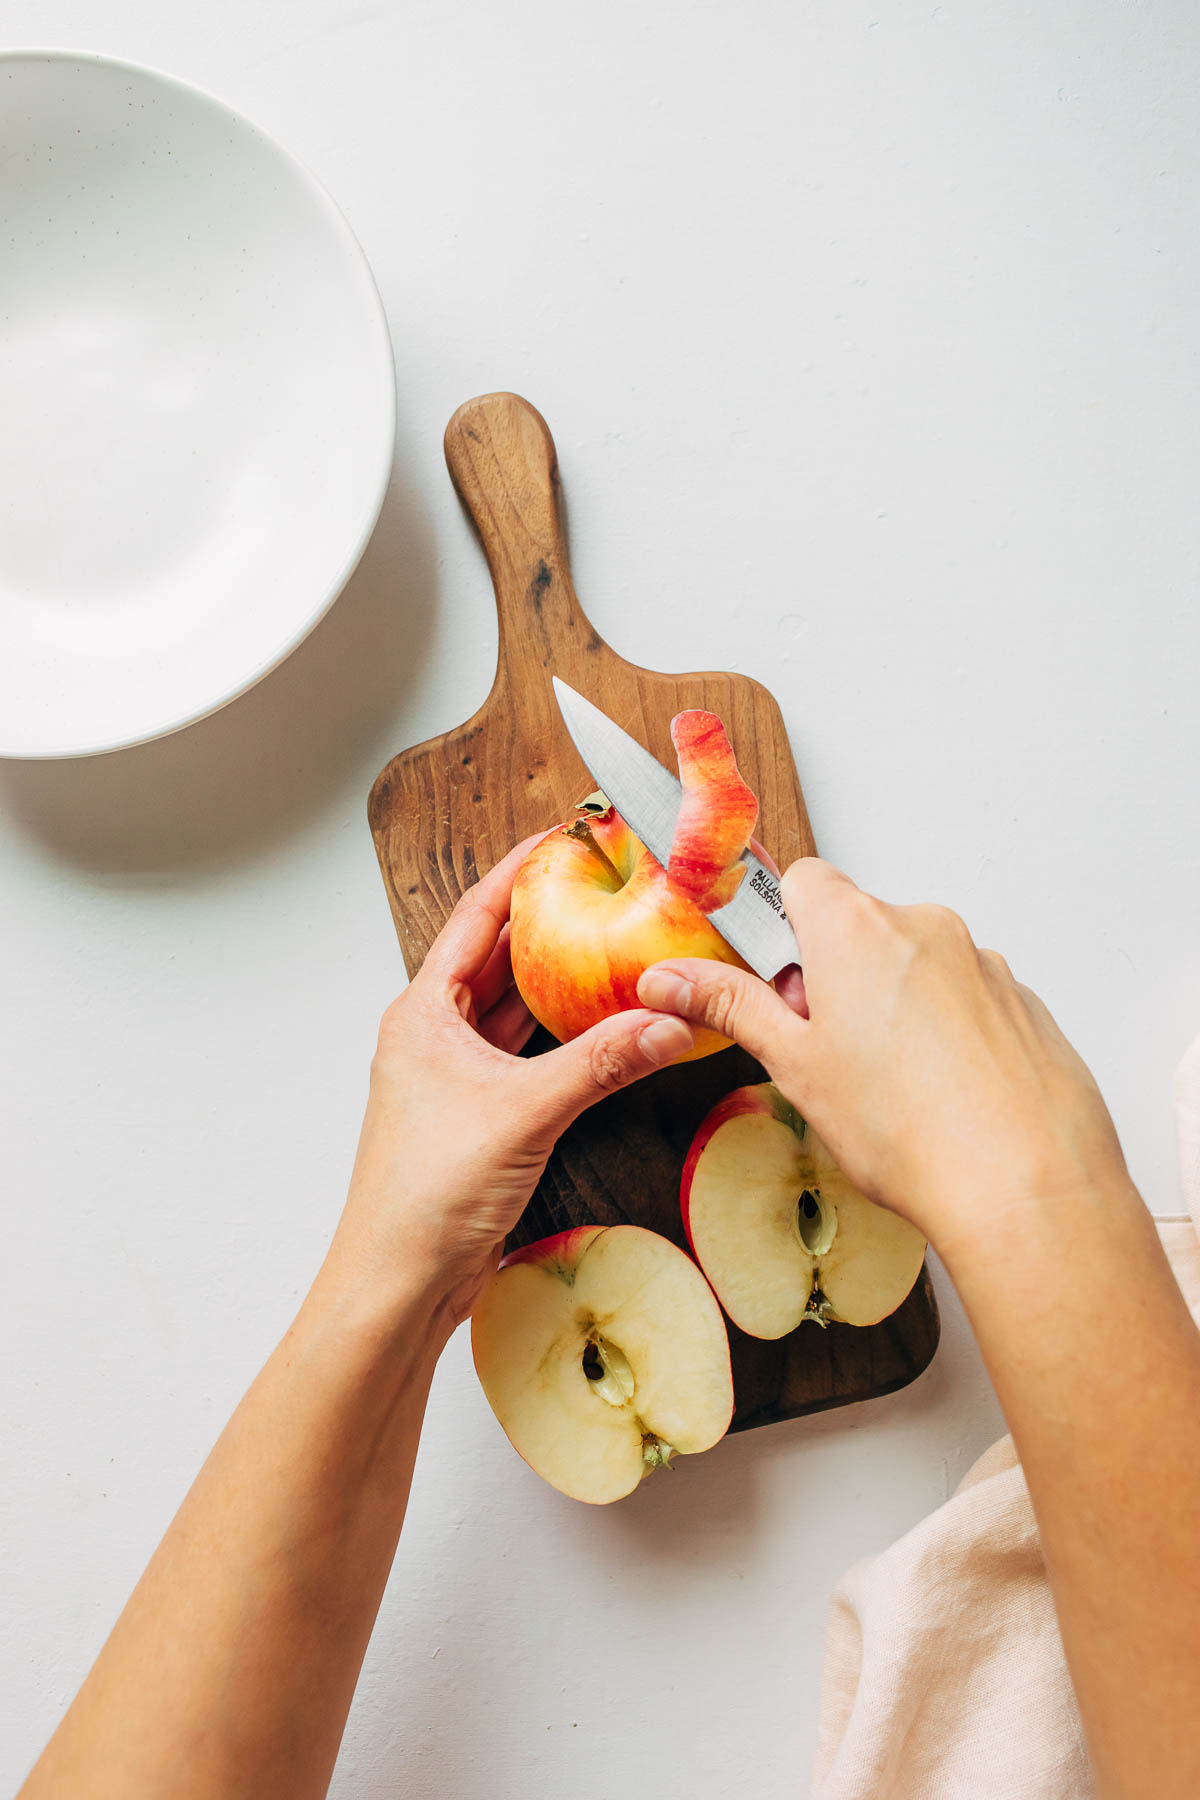 hands peeling an apple with a paring knife.